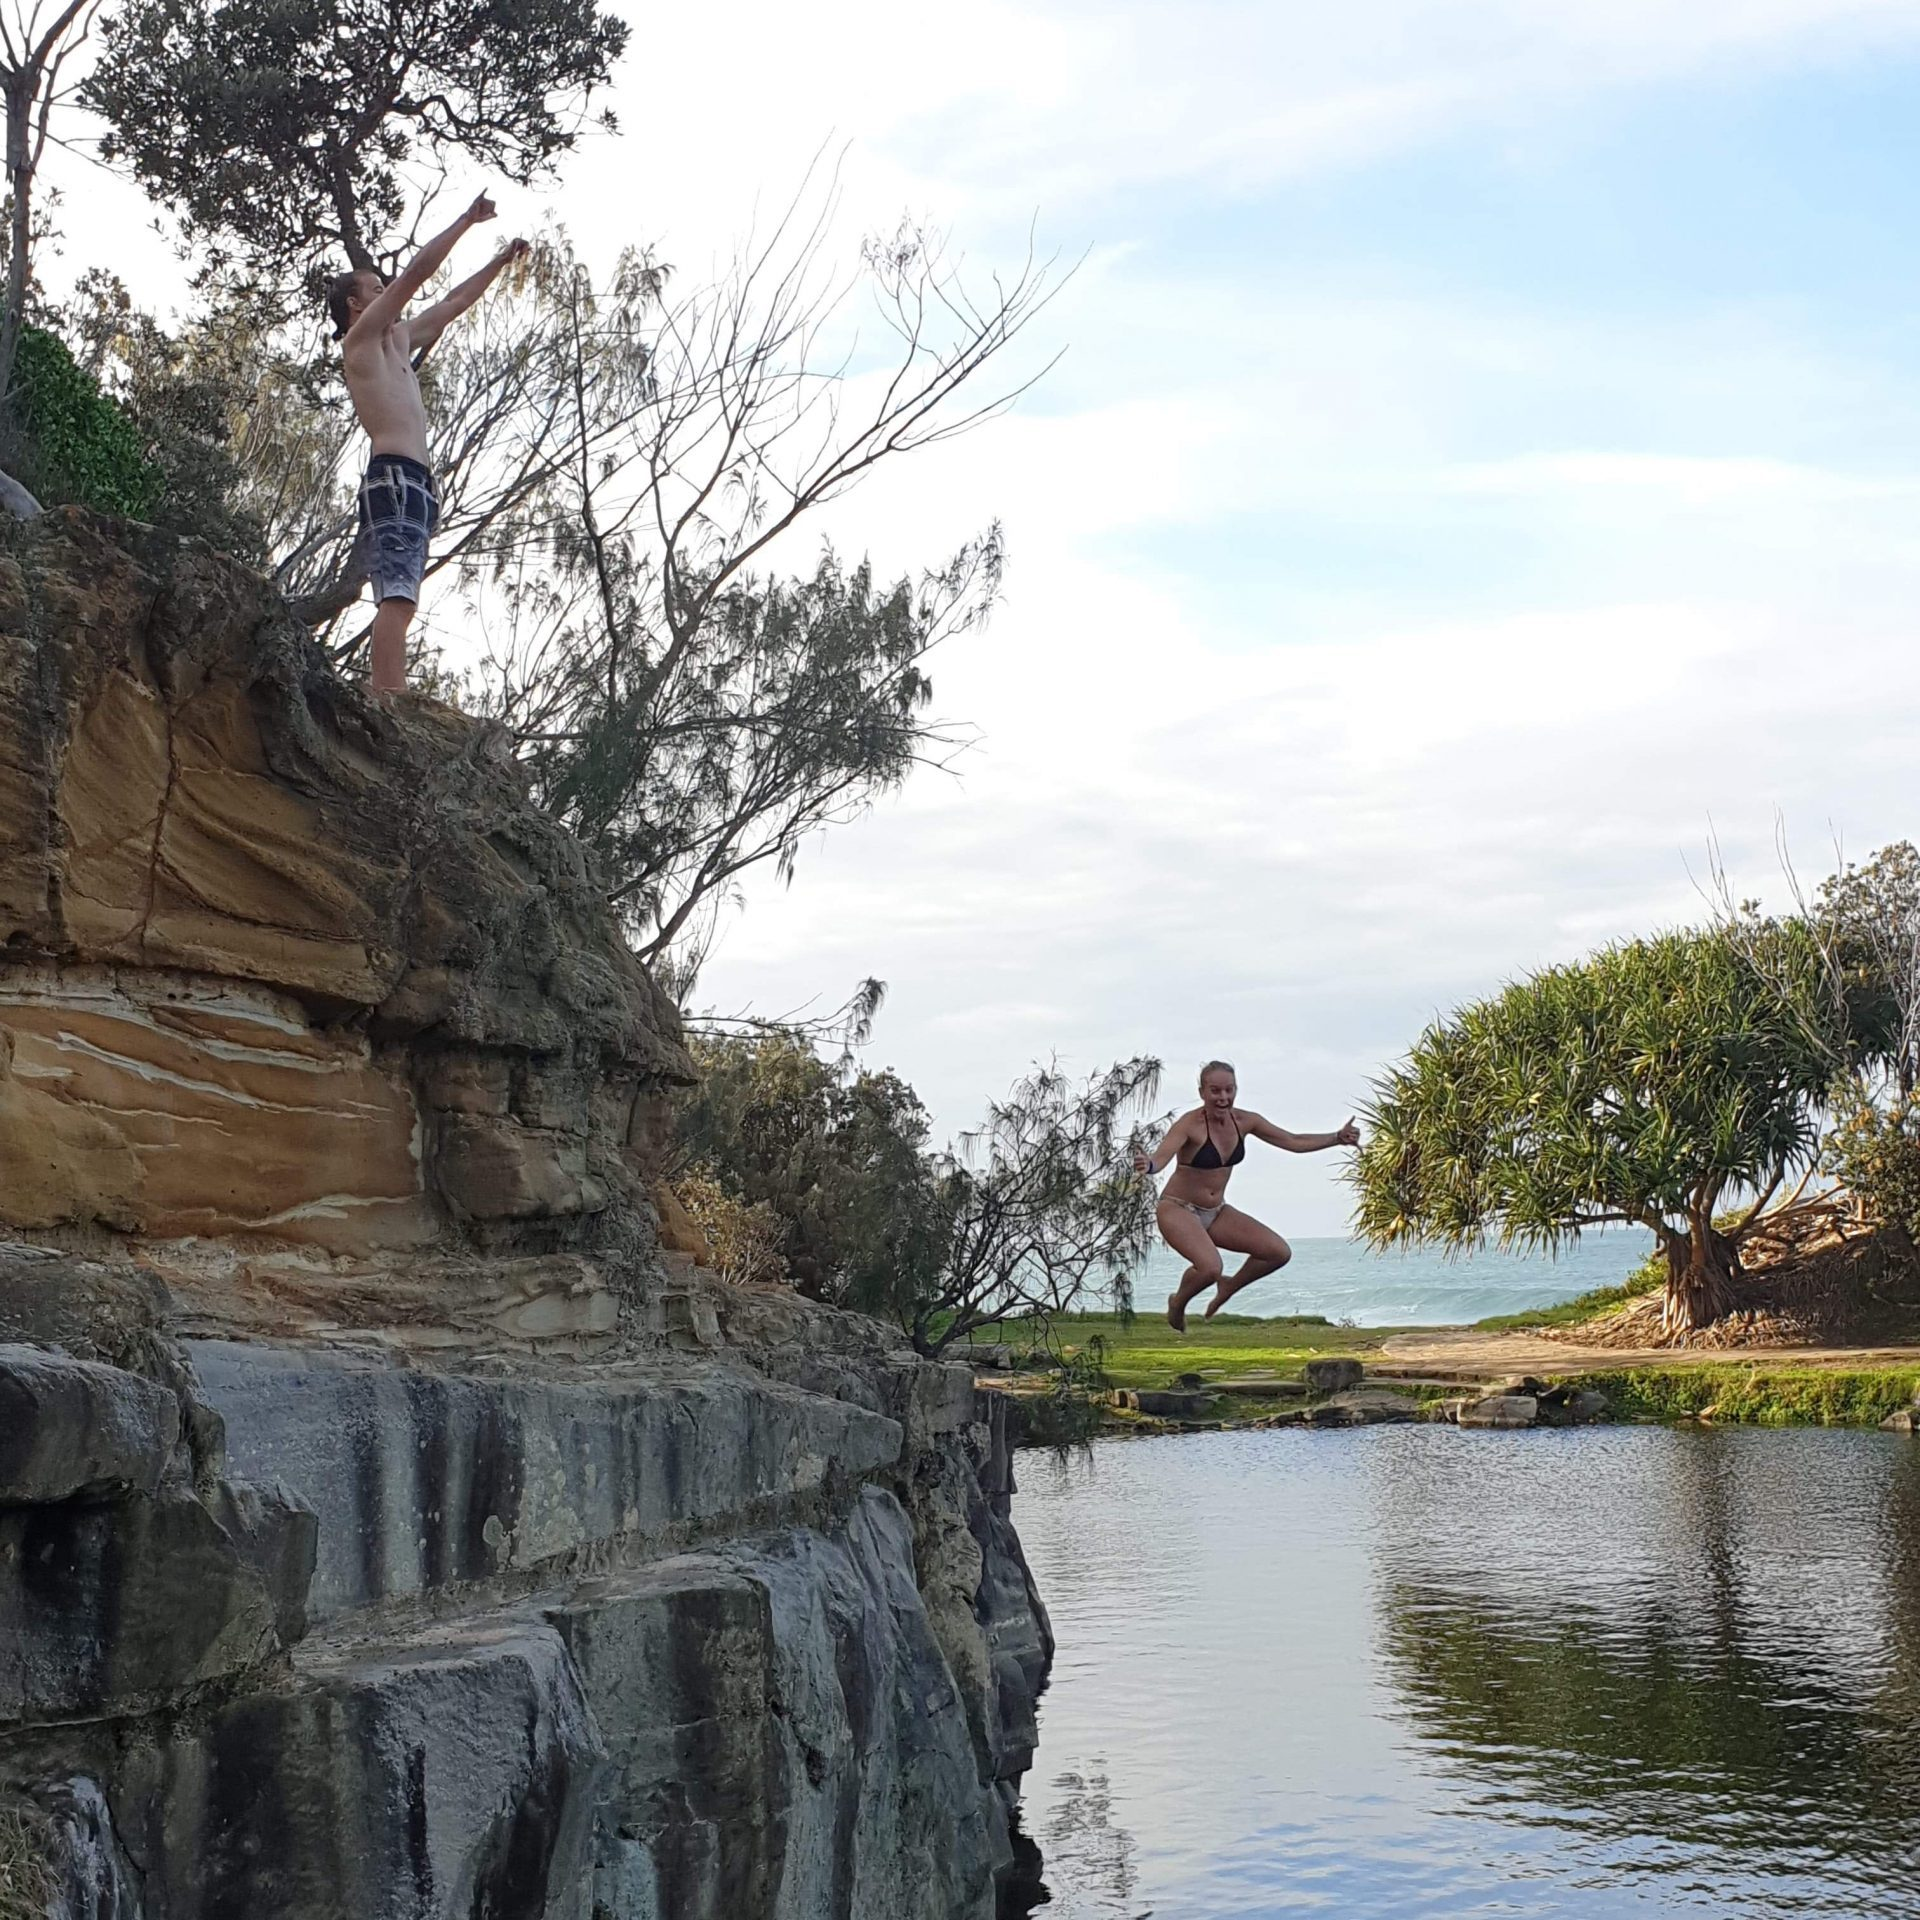 jumping from the rocks